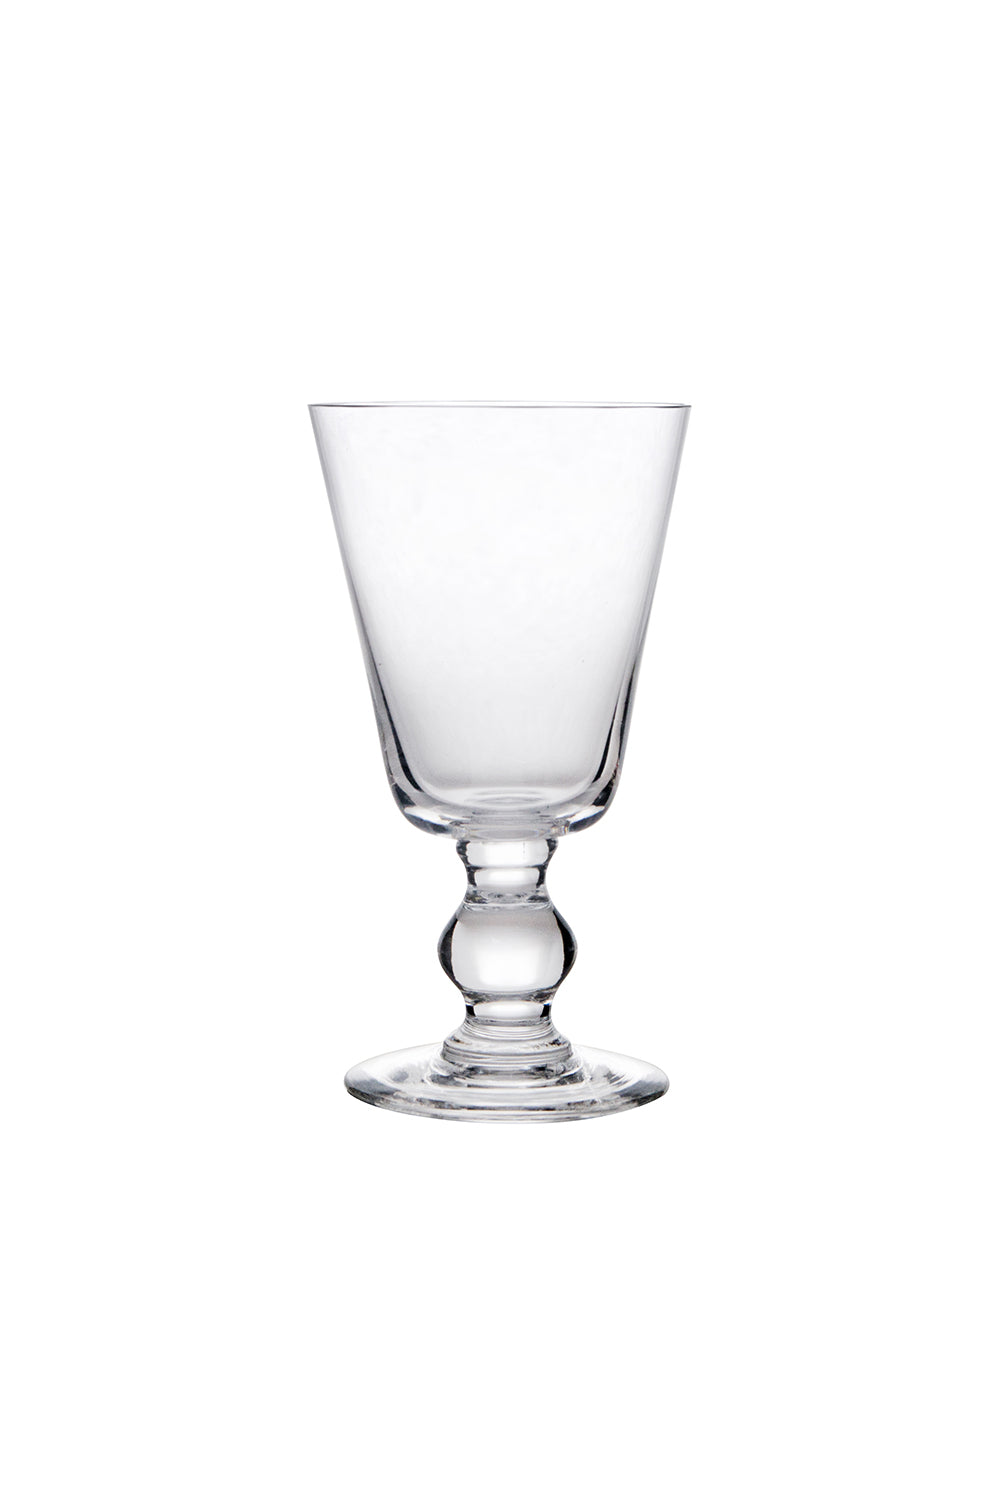 Bocage stem wine glass, handmade in France by La Rochere glass blowers